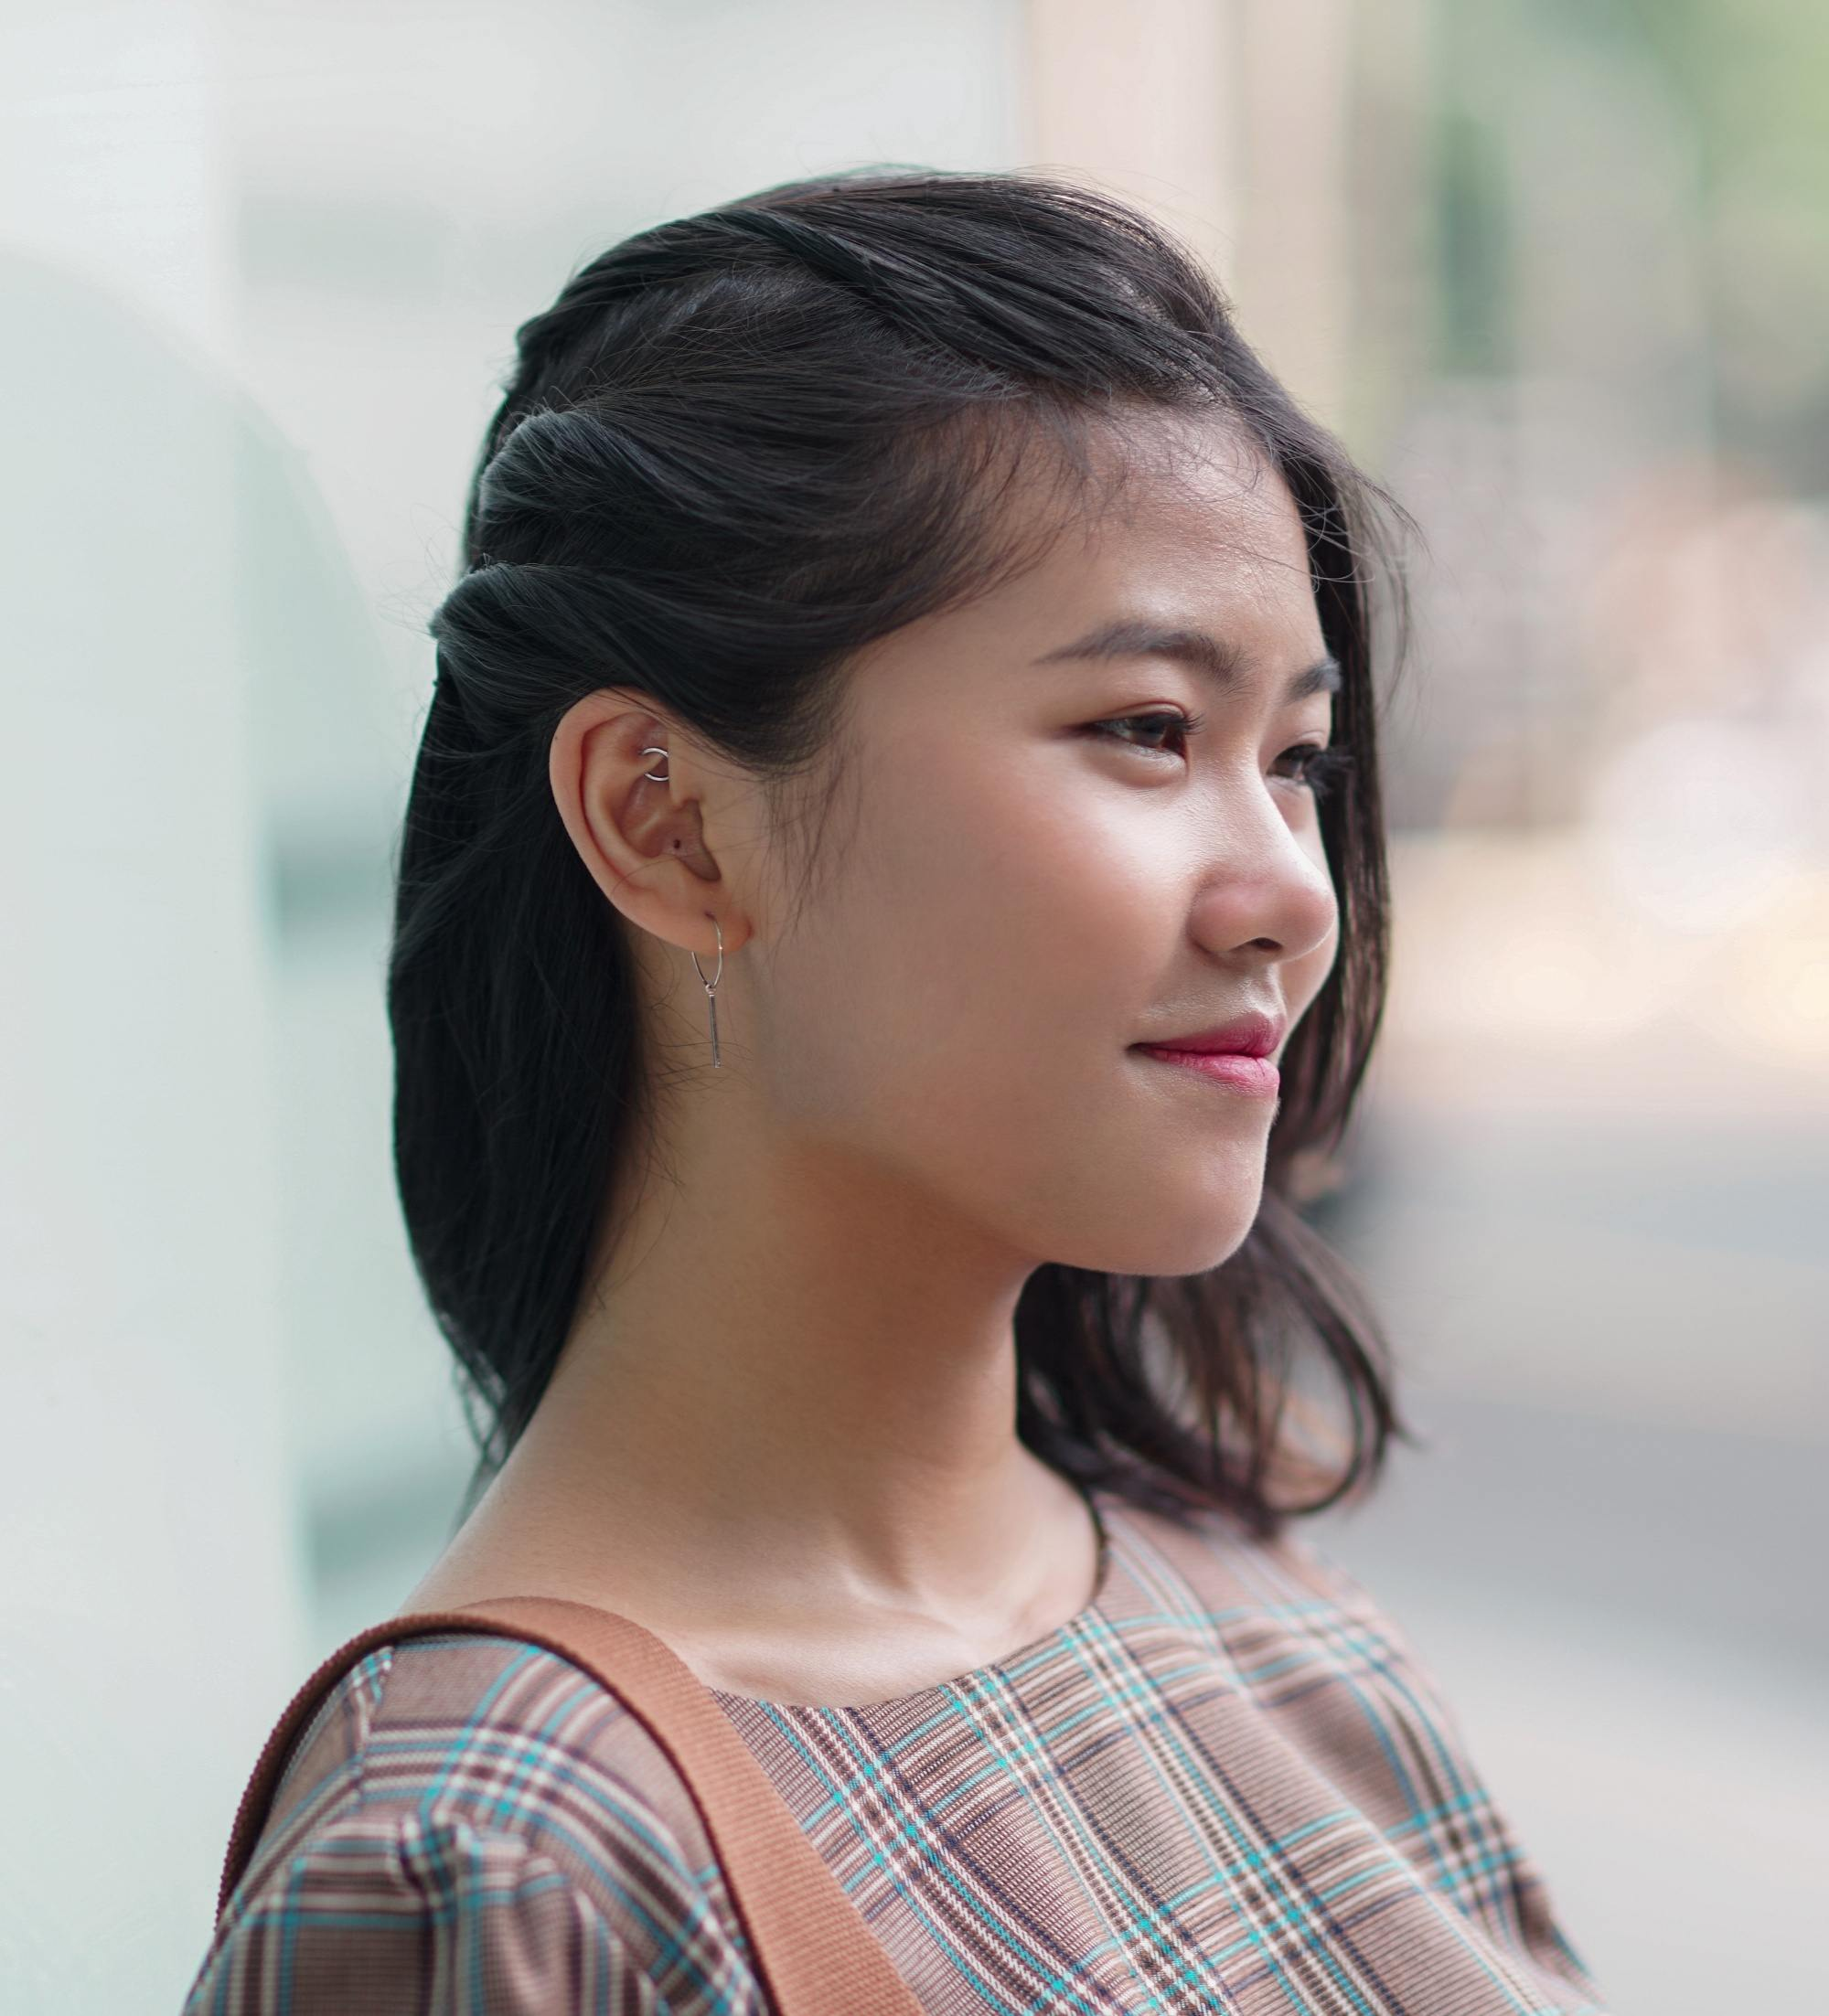 Shoulder length hairstyles: Side closeup shot of an Asian woman with styled short hair